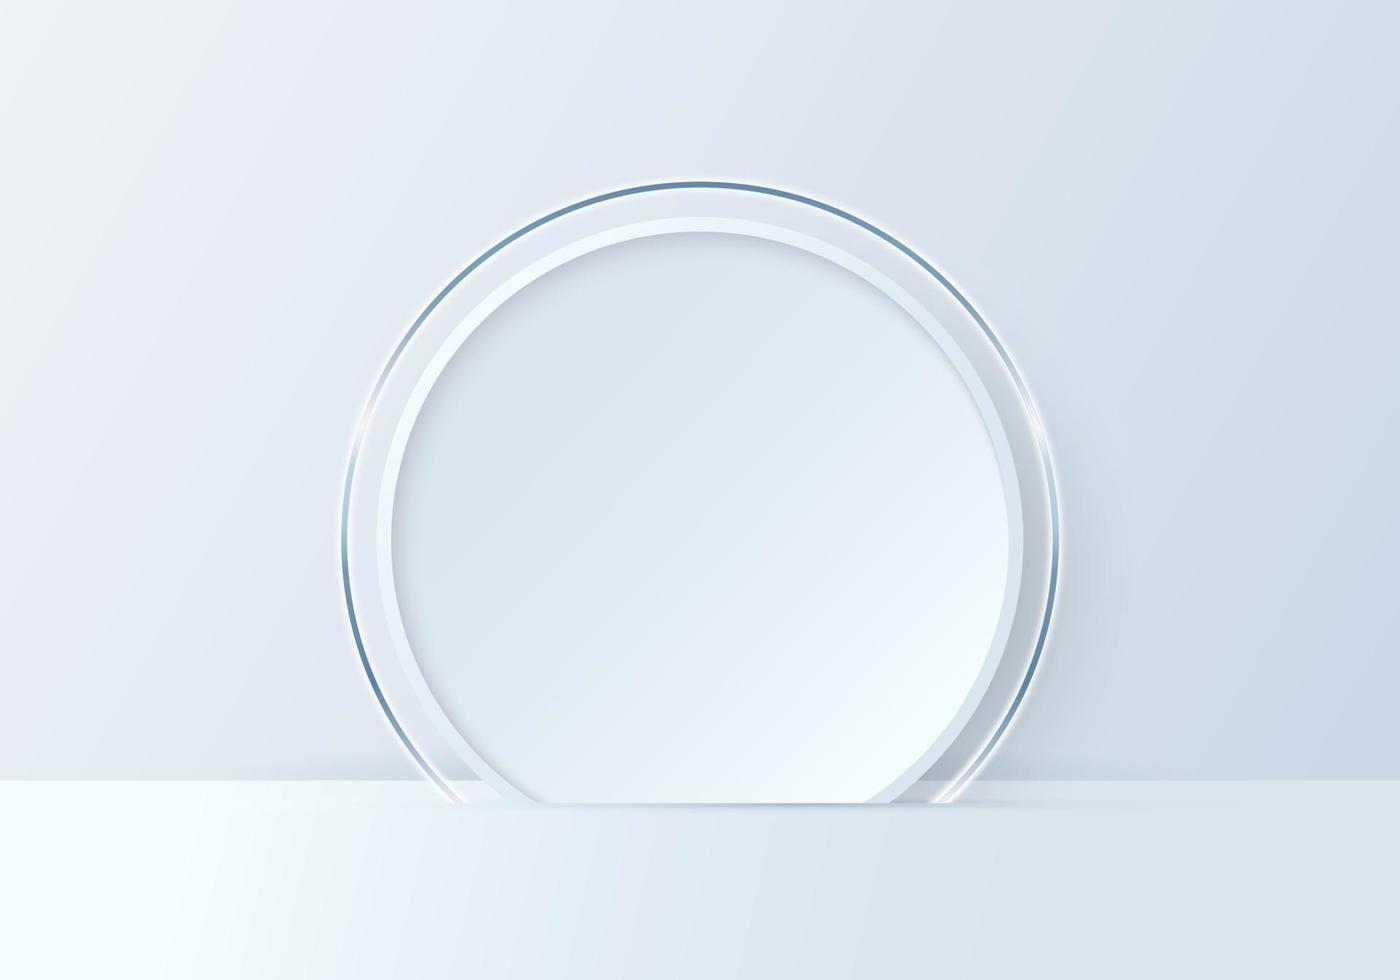 3D illustration mockup white circle shape and ring backdrop on clean background vector